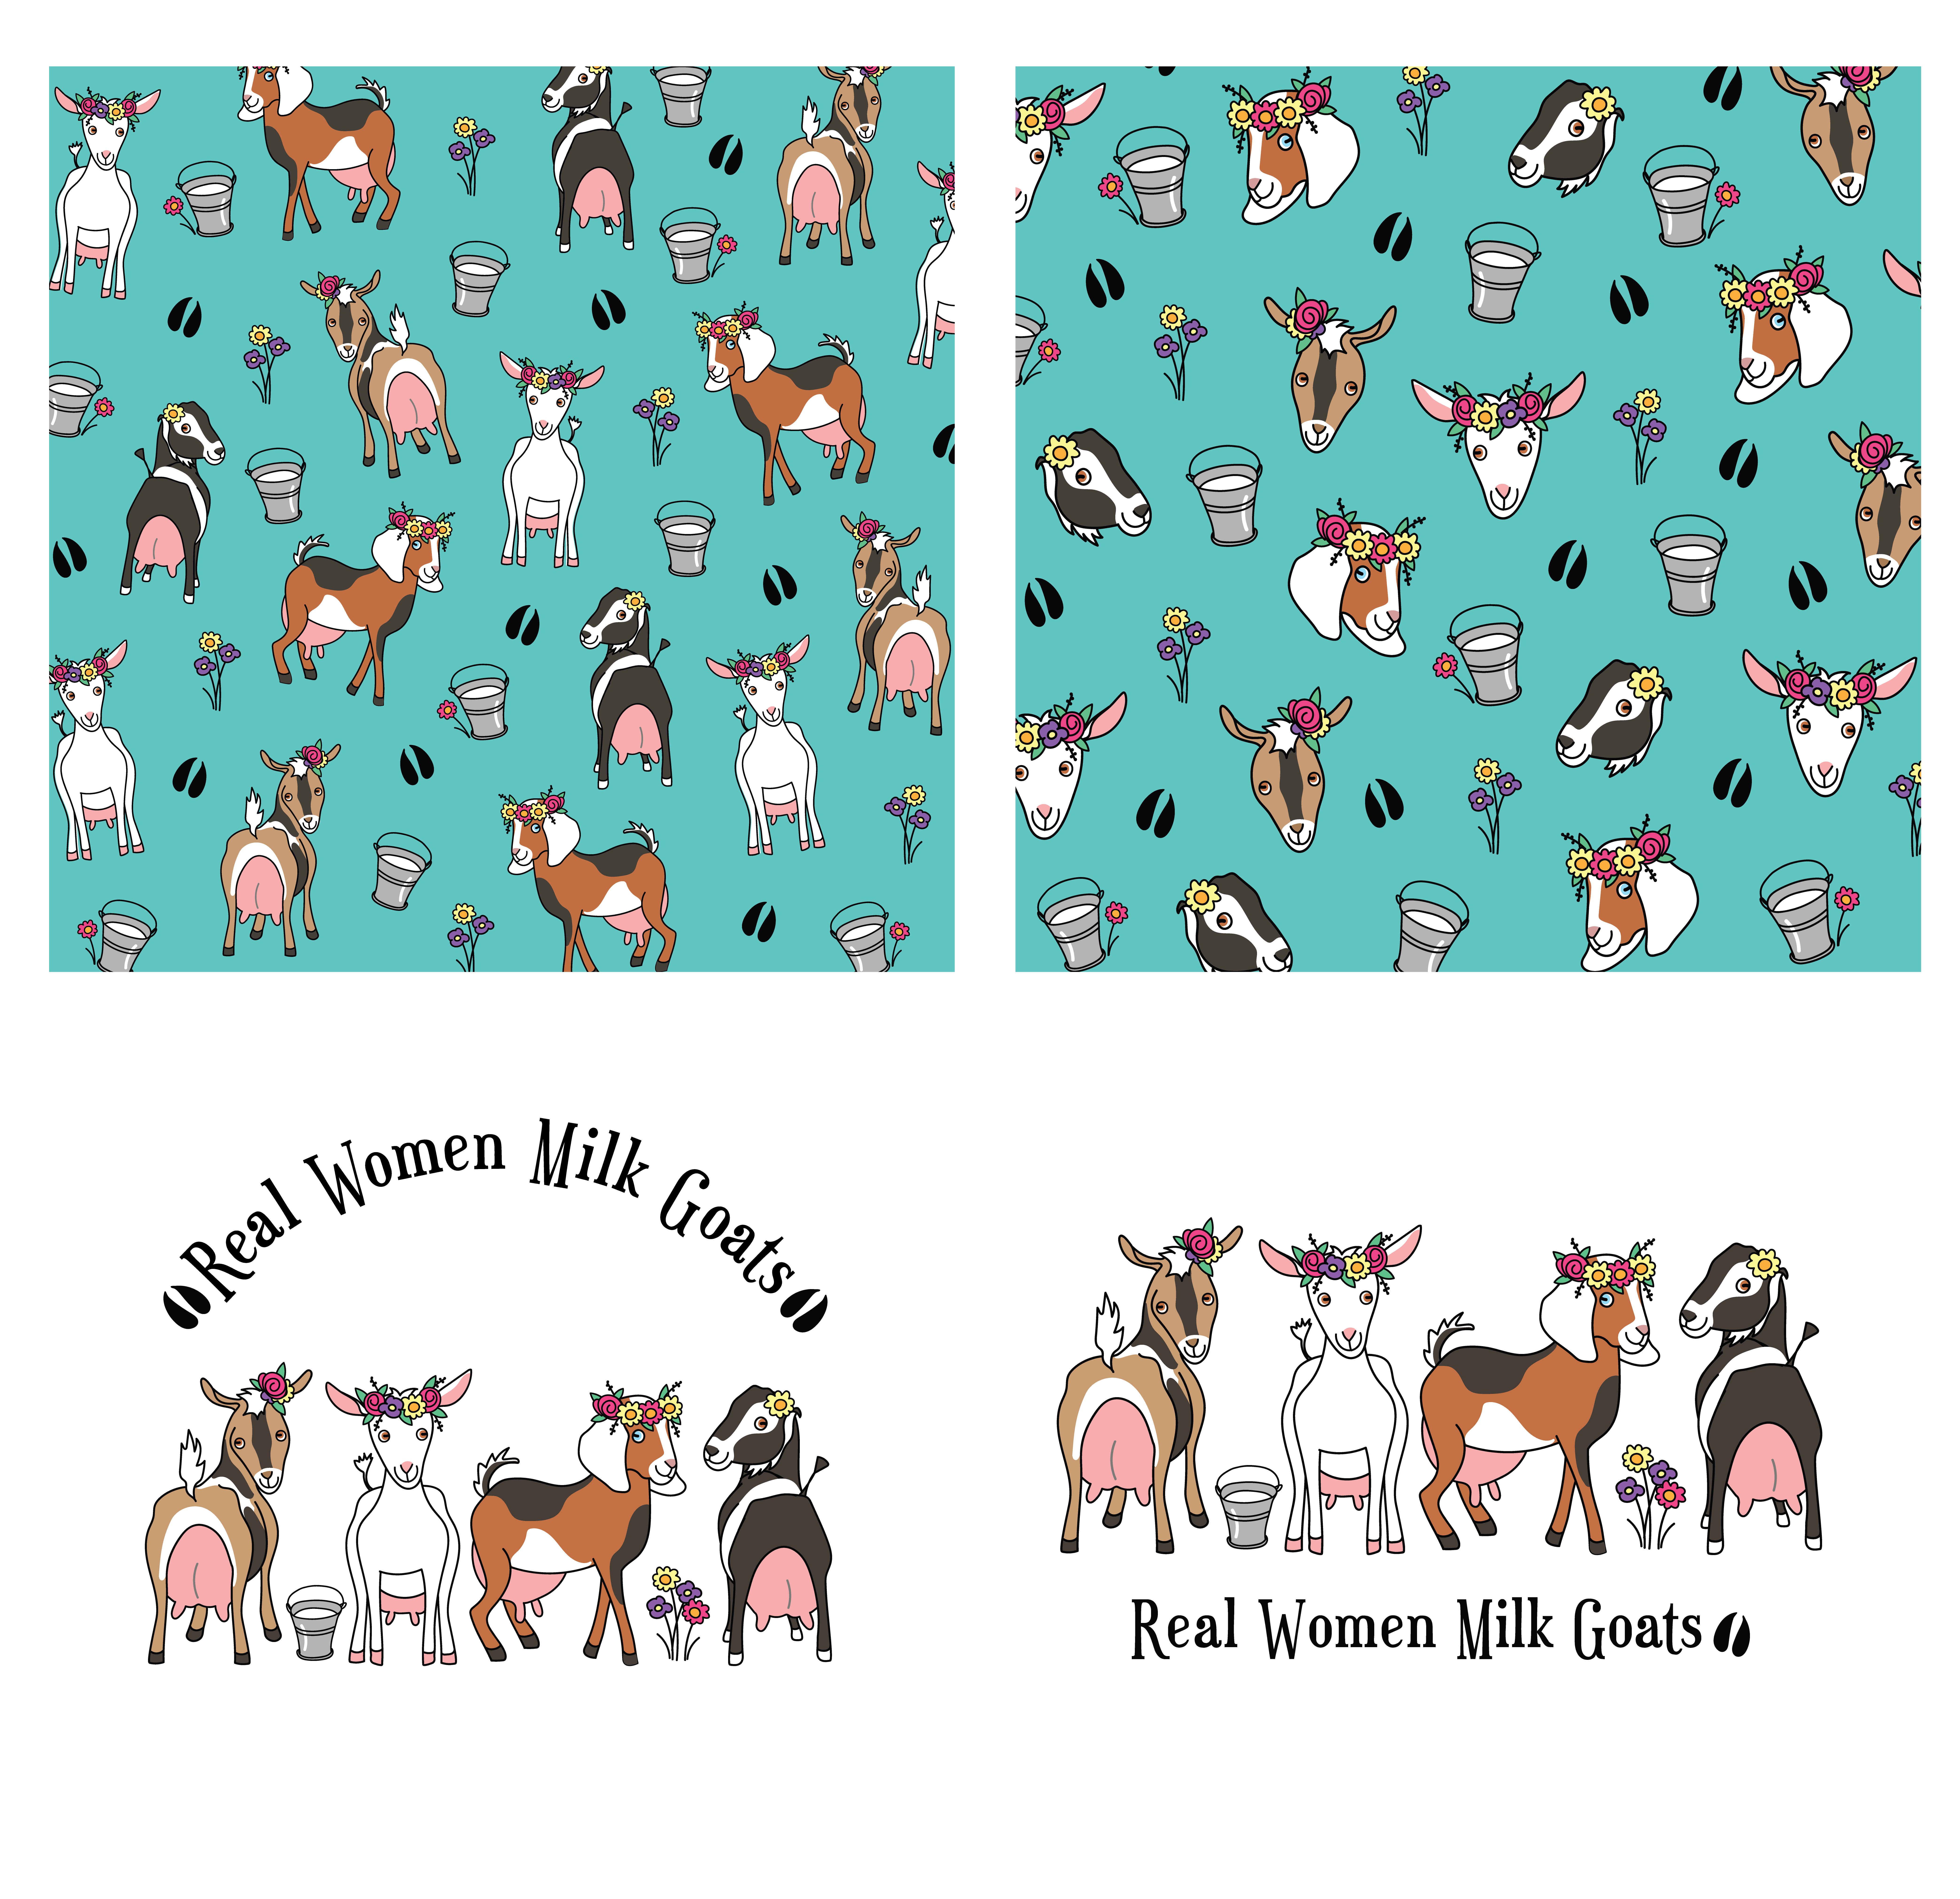 Dairy Goat Club needs cute design for apparel fundraising efforts!